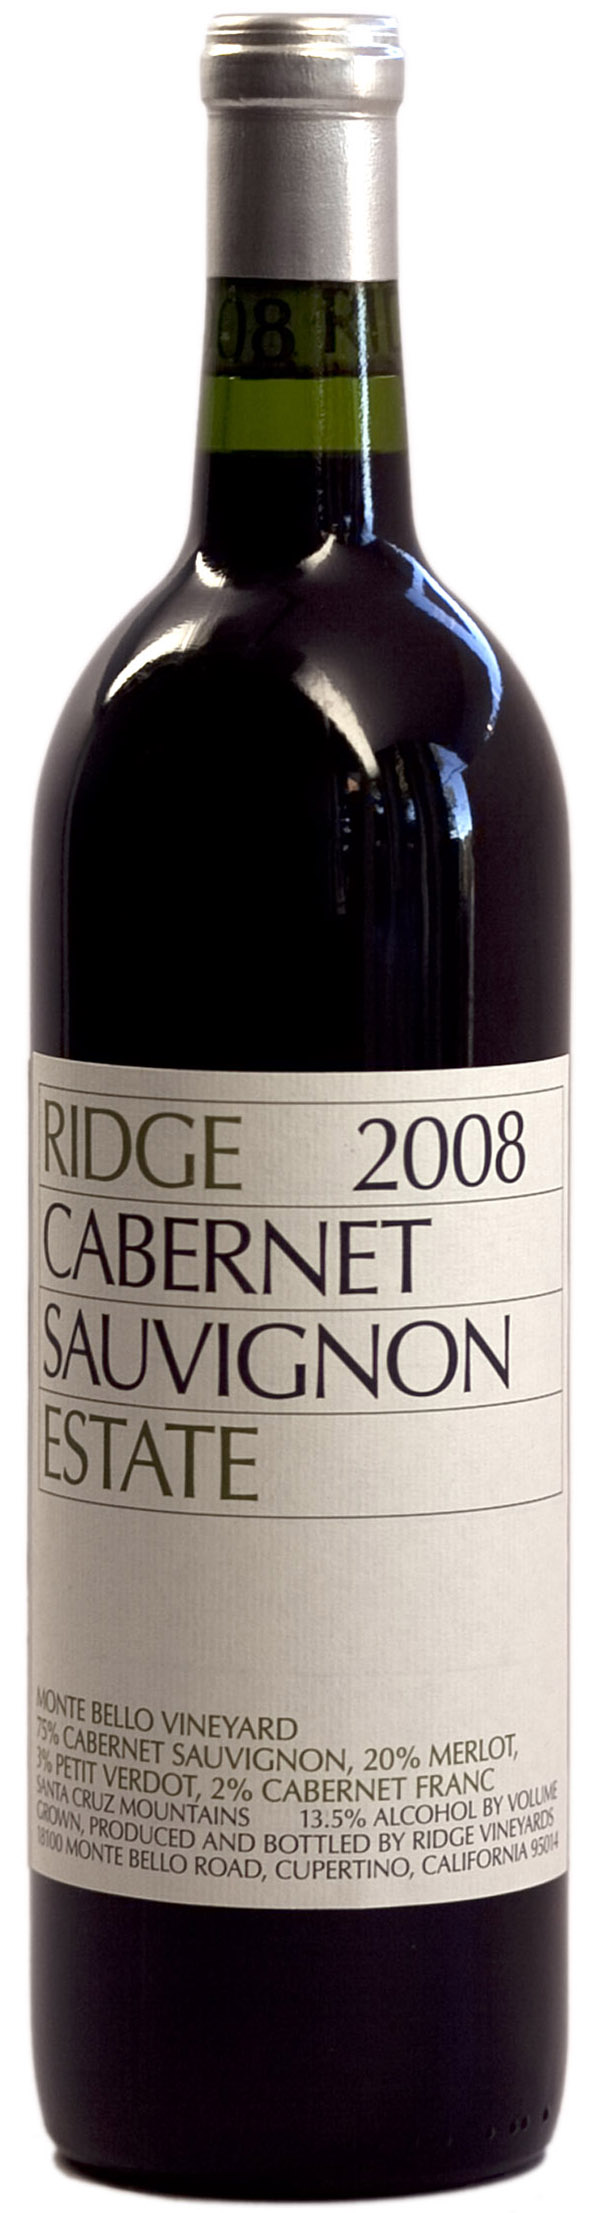 Ridge Estate Cabernet Sauvignon 2008